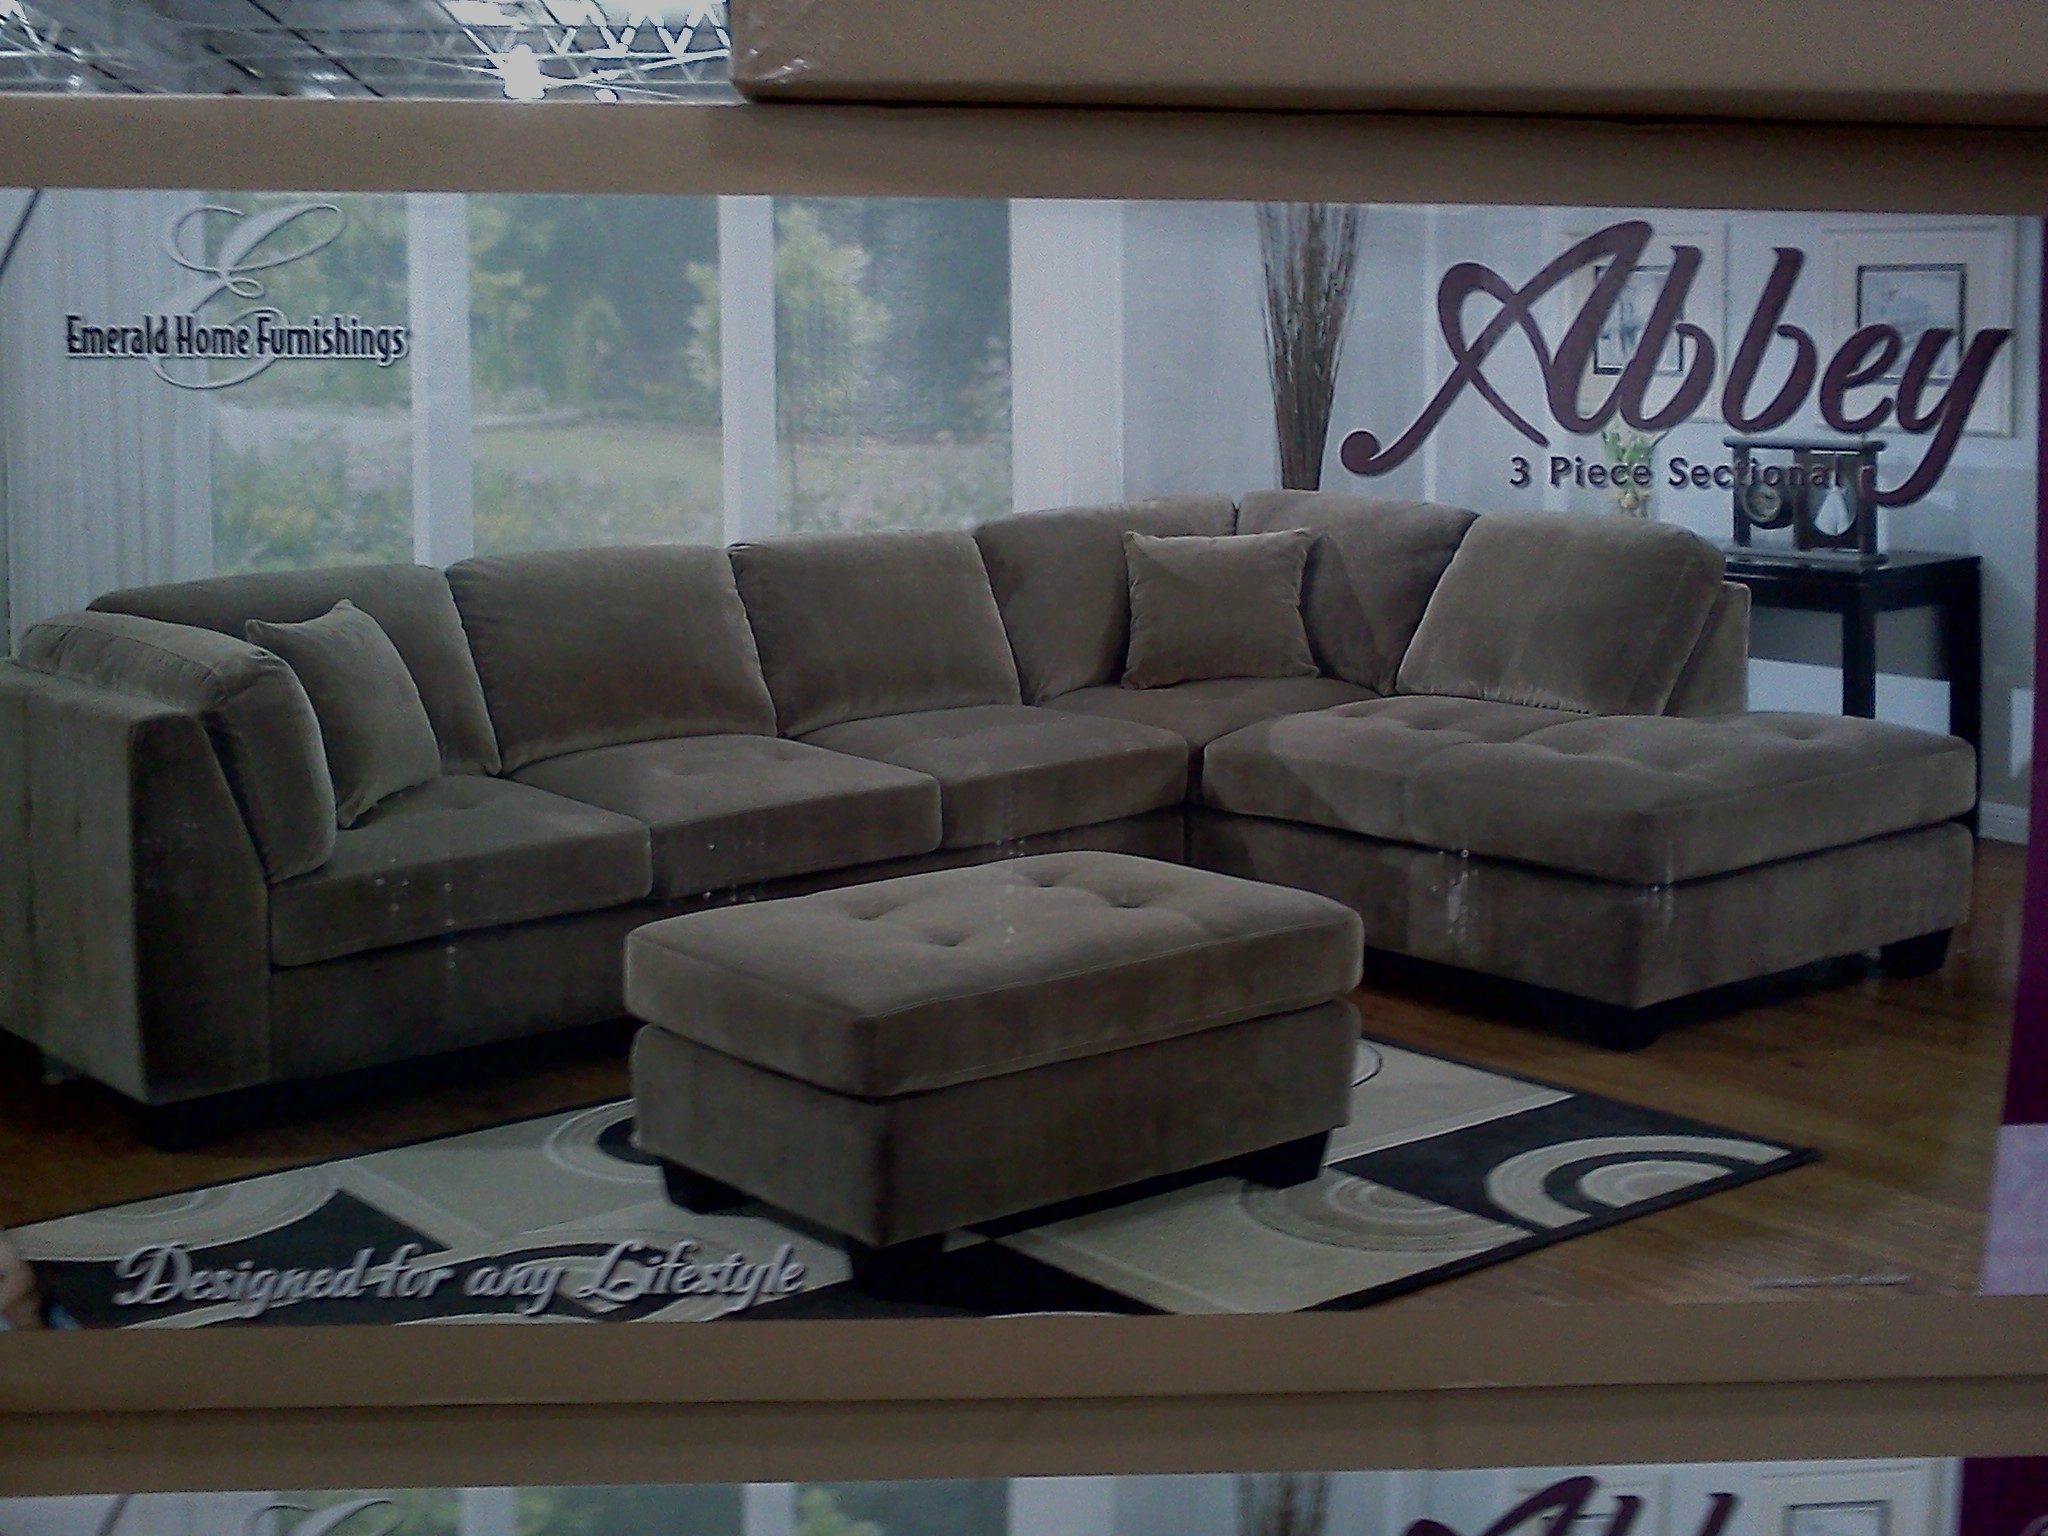 Amusing Sectional Sofas At Costco 11 About Remodel Sectional Sofas Regarding Raleigh Sectional Sofas (View 7 of 10)